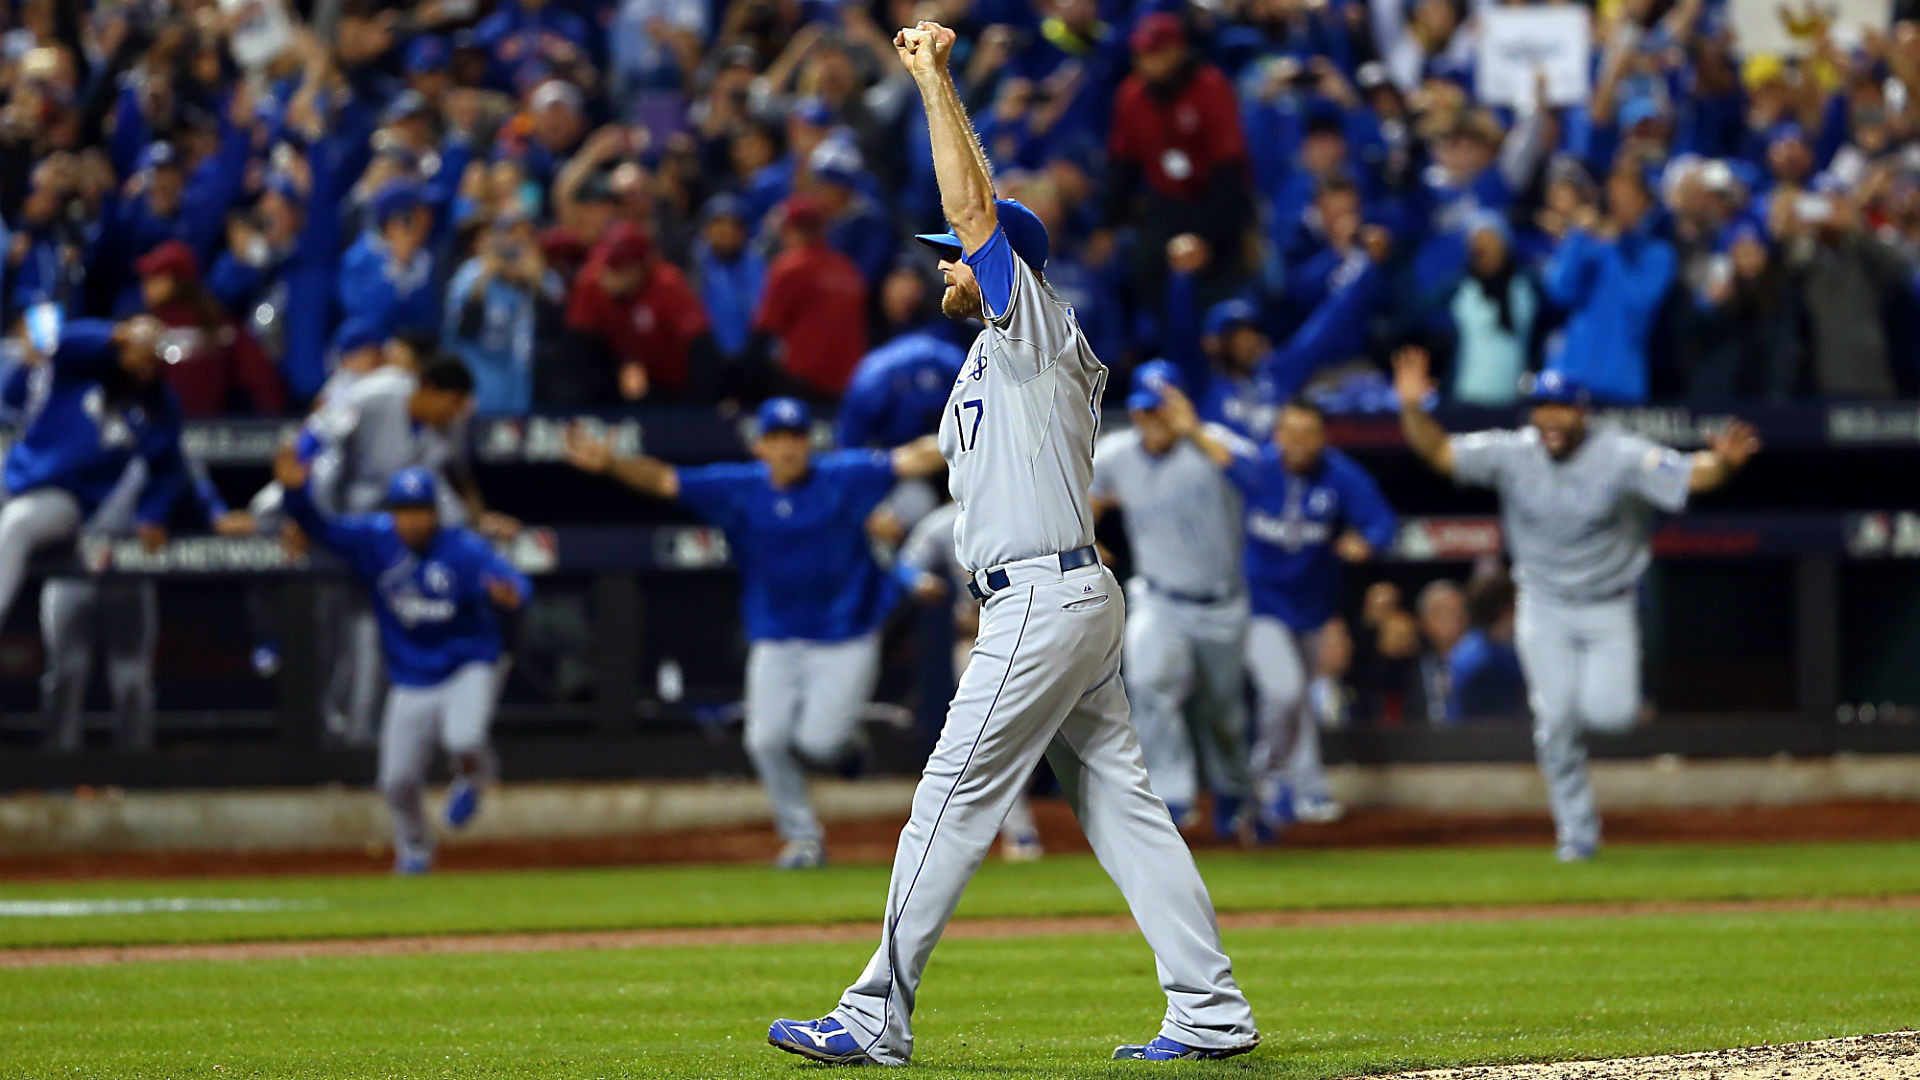 1920x1080 World Series 2015: Amid Royals' comeback, Mets' collapse and regret, better  team won | MLB | Sporting News